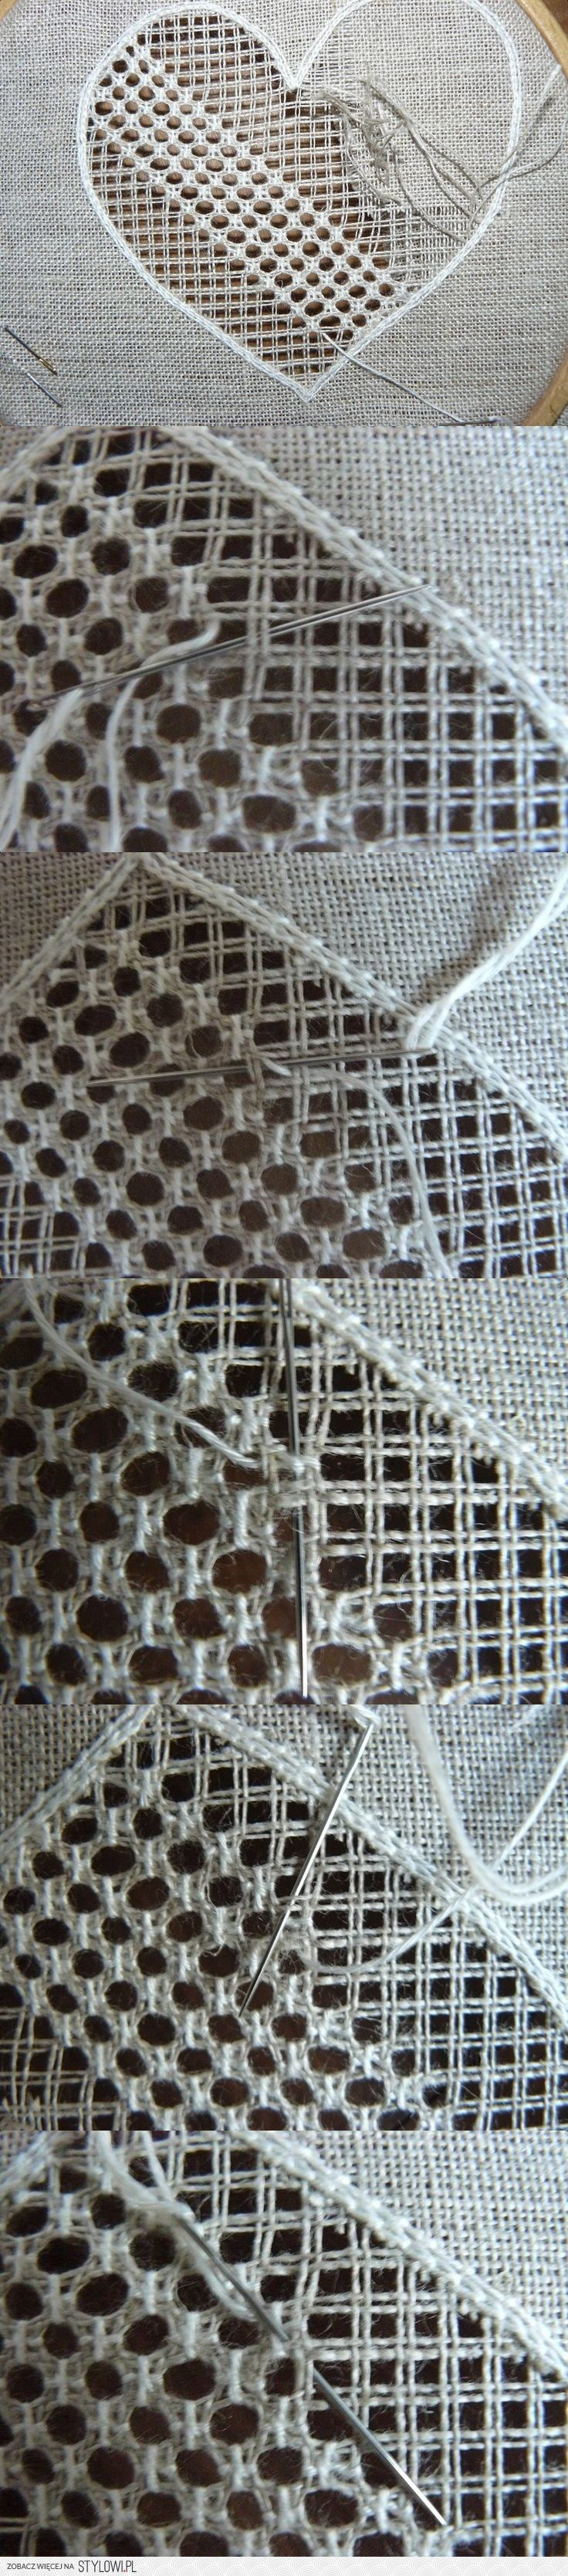 Hardanger Embroidery - This appears to be the same stitch used in chair seats. More More